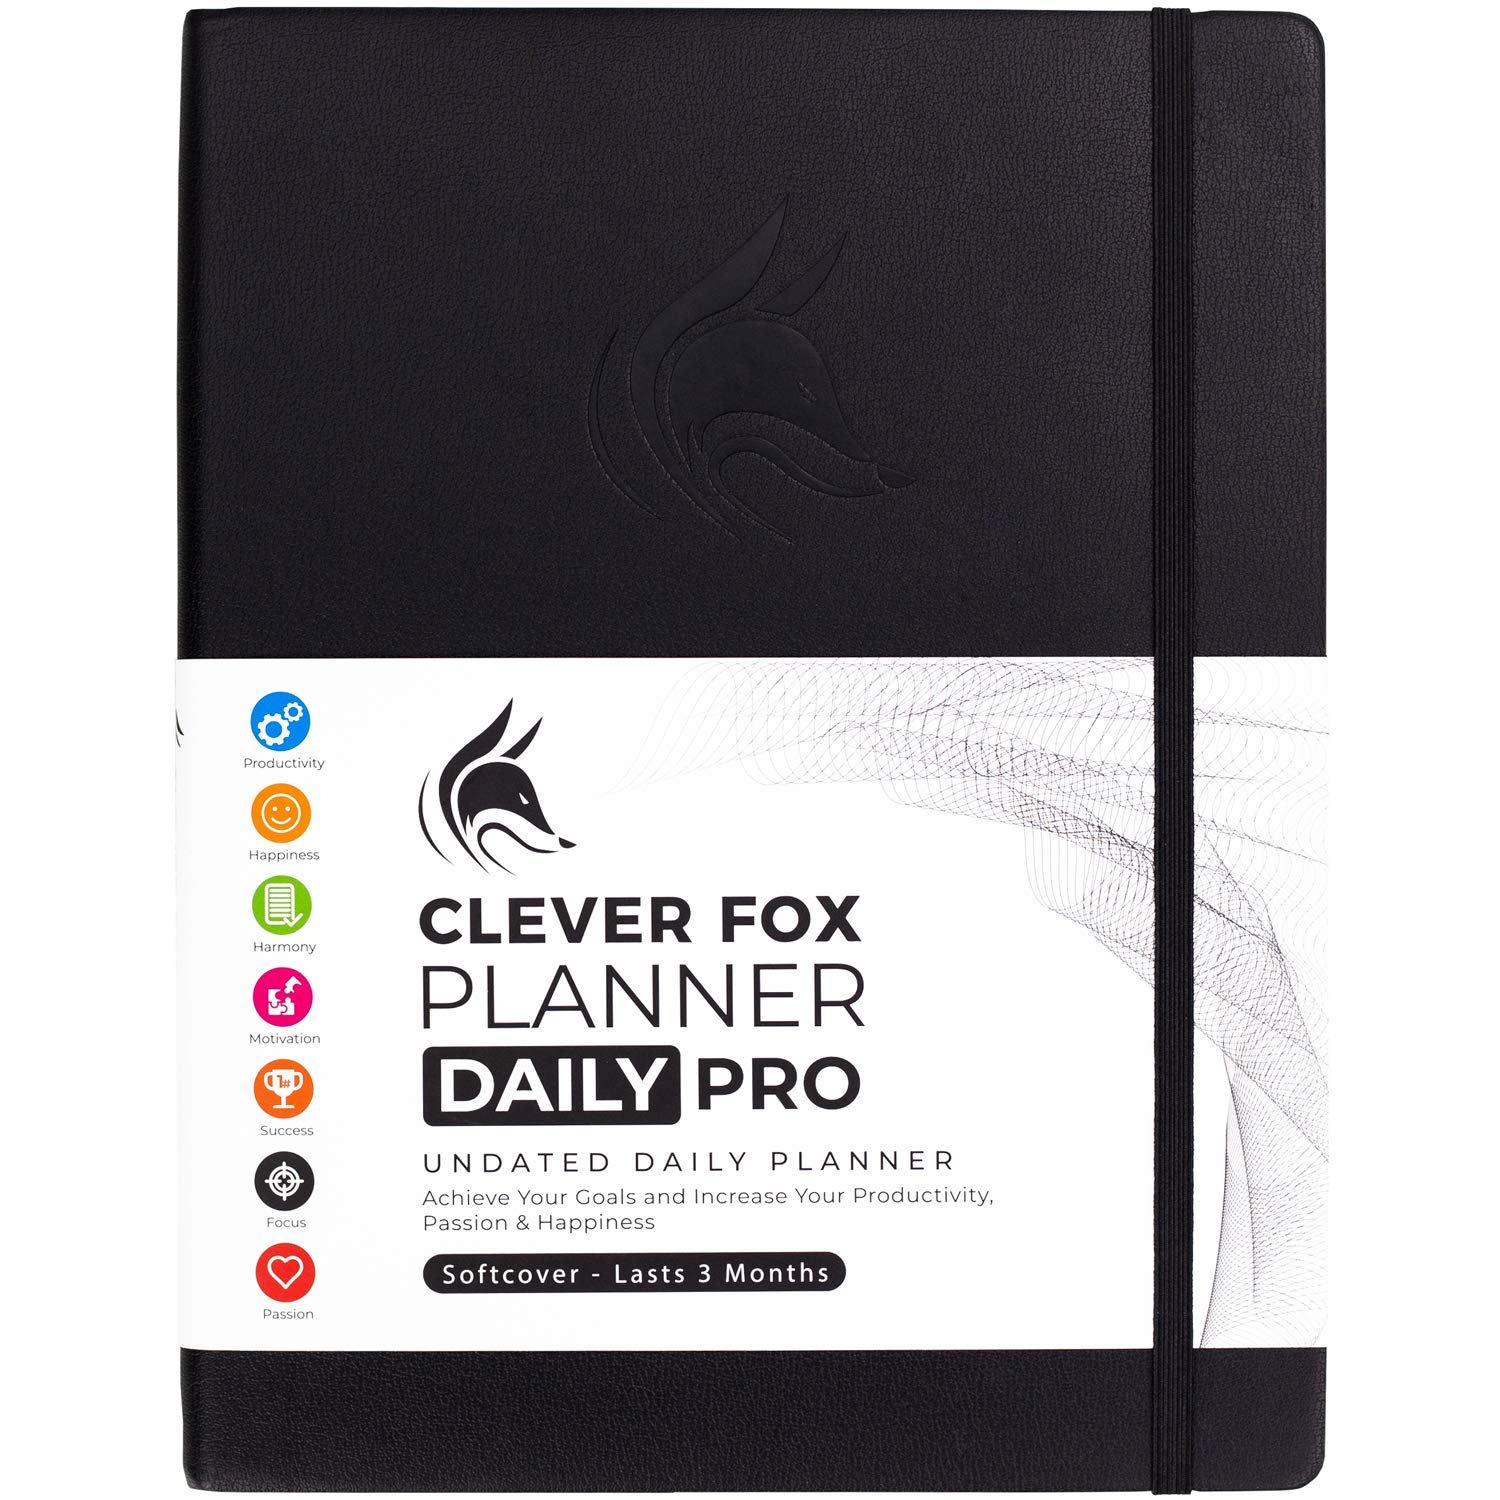 """Clever Fox Planner Daily PRO - 8.5 x 11"""" A4 Size Daily Life Planner and Gratitude Journal to Increase Productivity, Time Management and Hit Your Goals - Undated - Lasts 3 Months (Black)"""